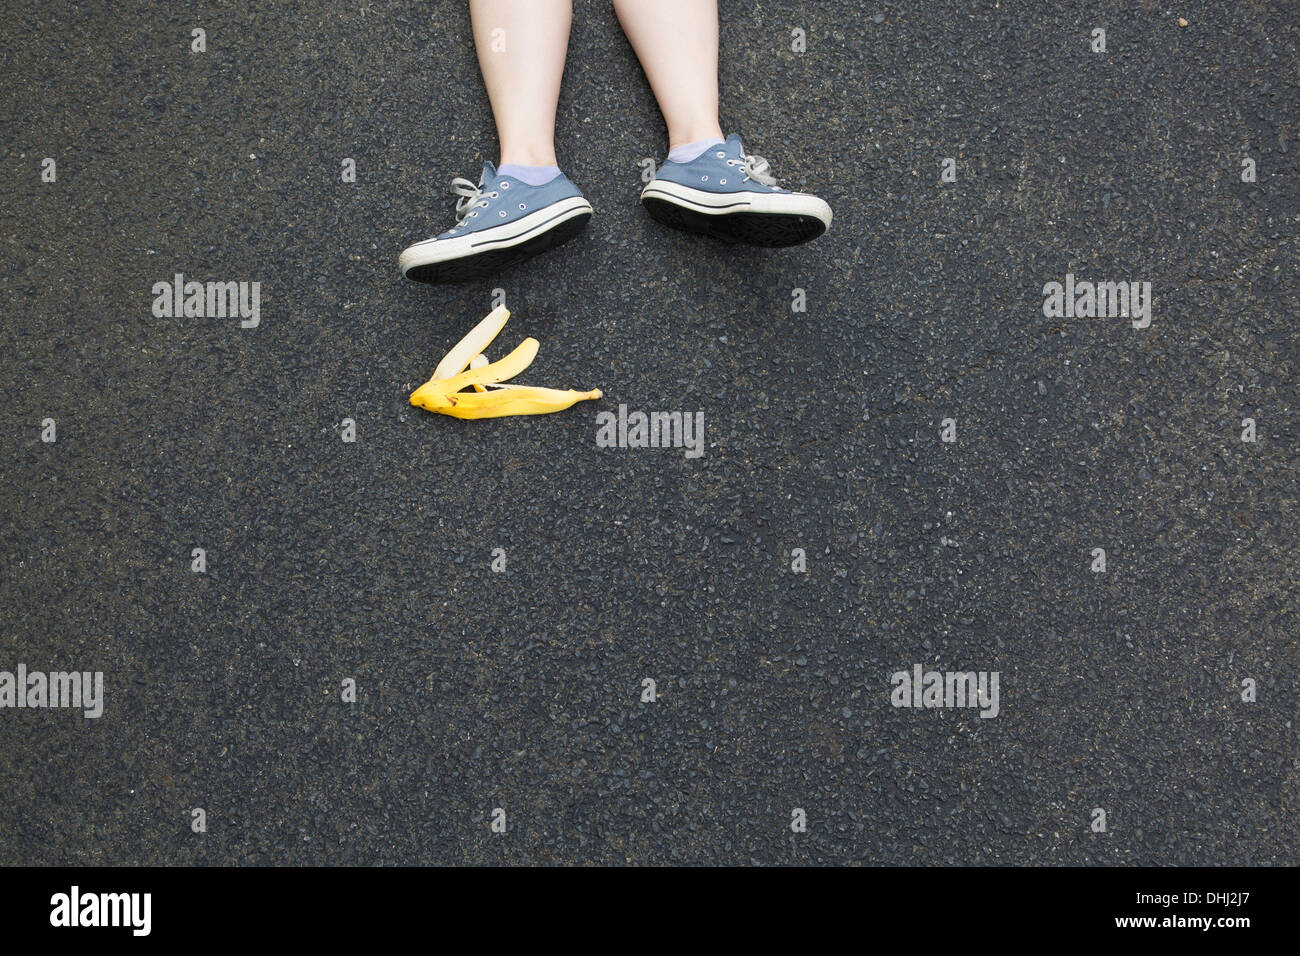 Pair of legs and banana skin on tarmac - Stock Image